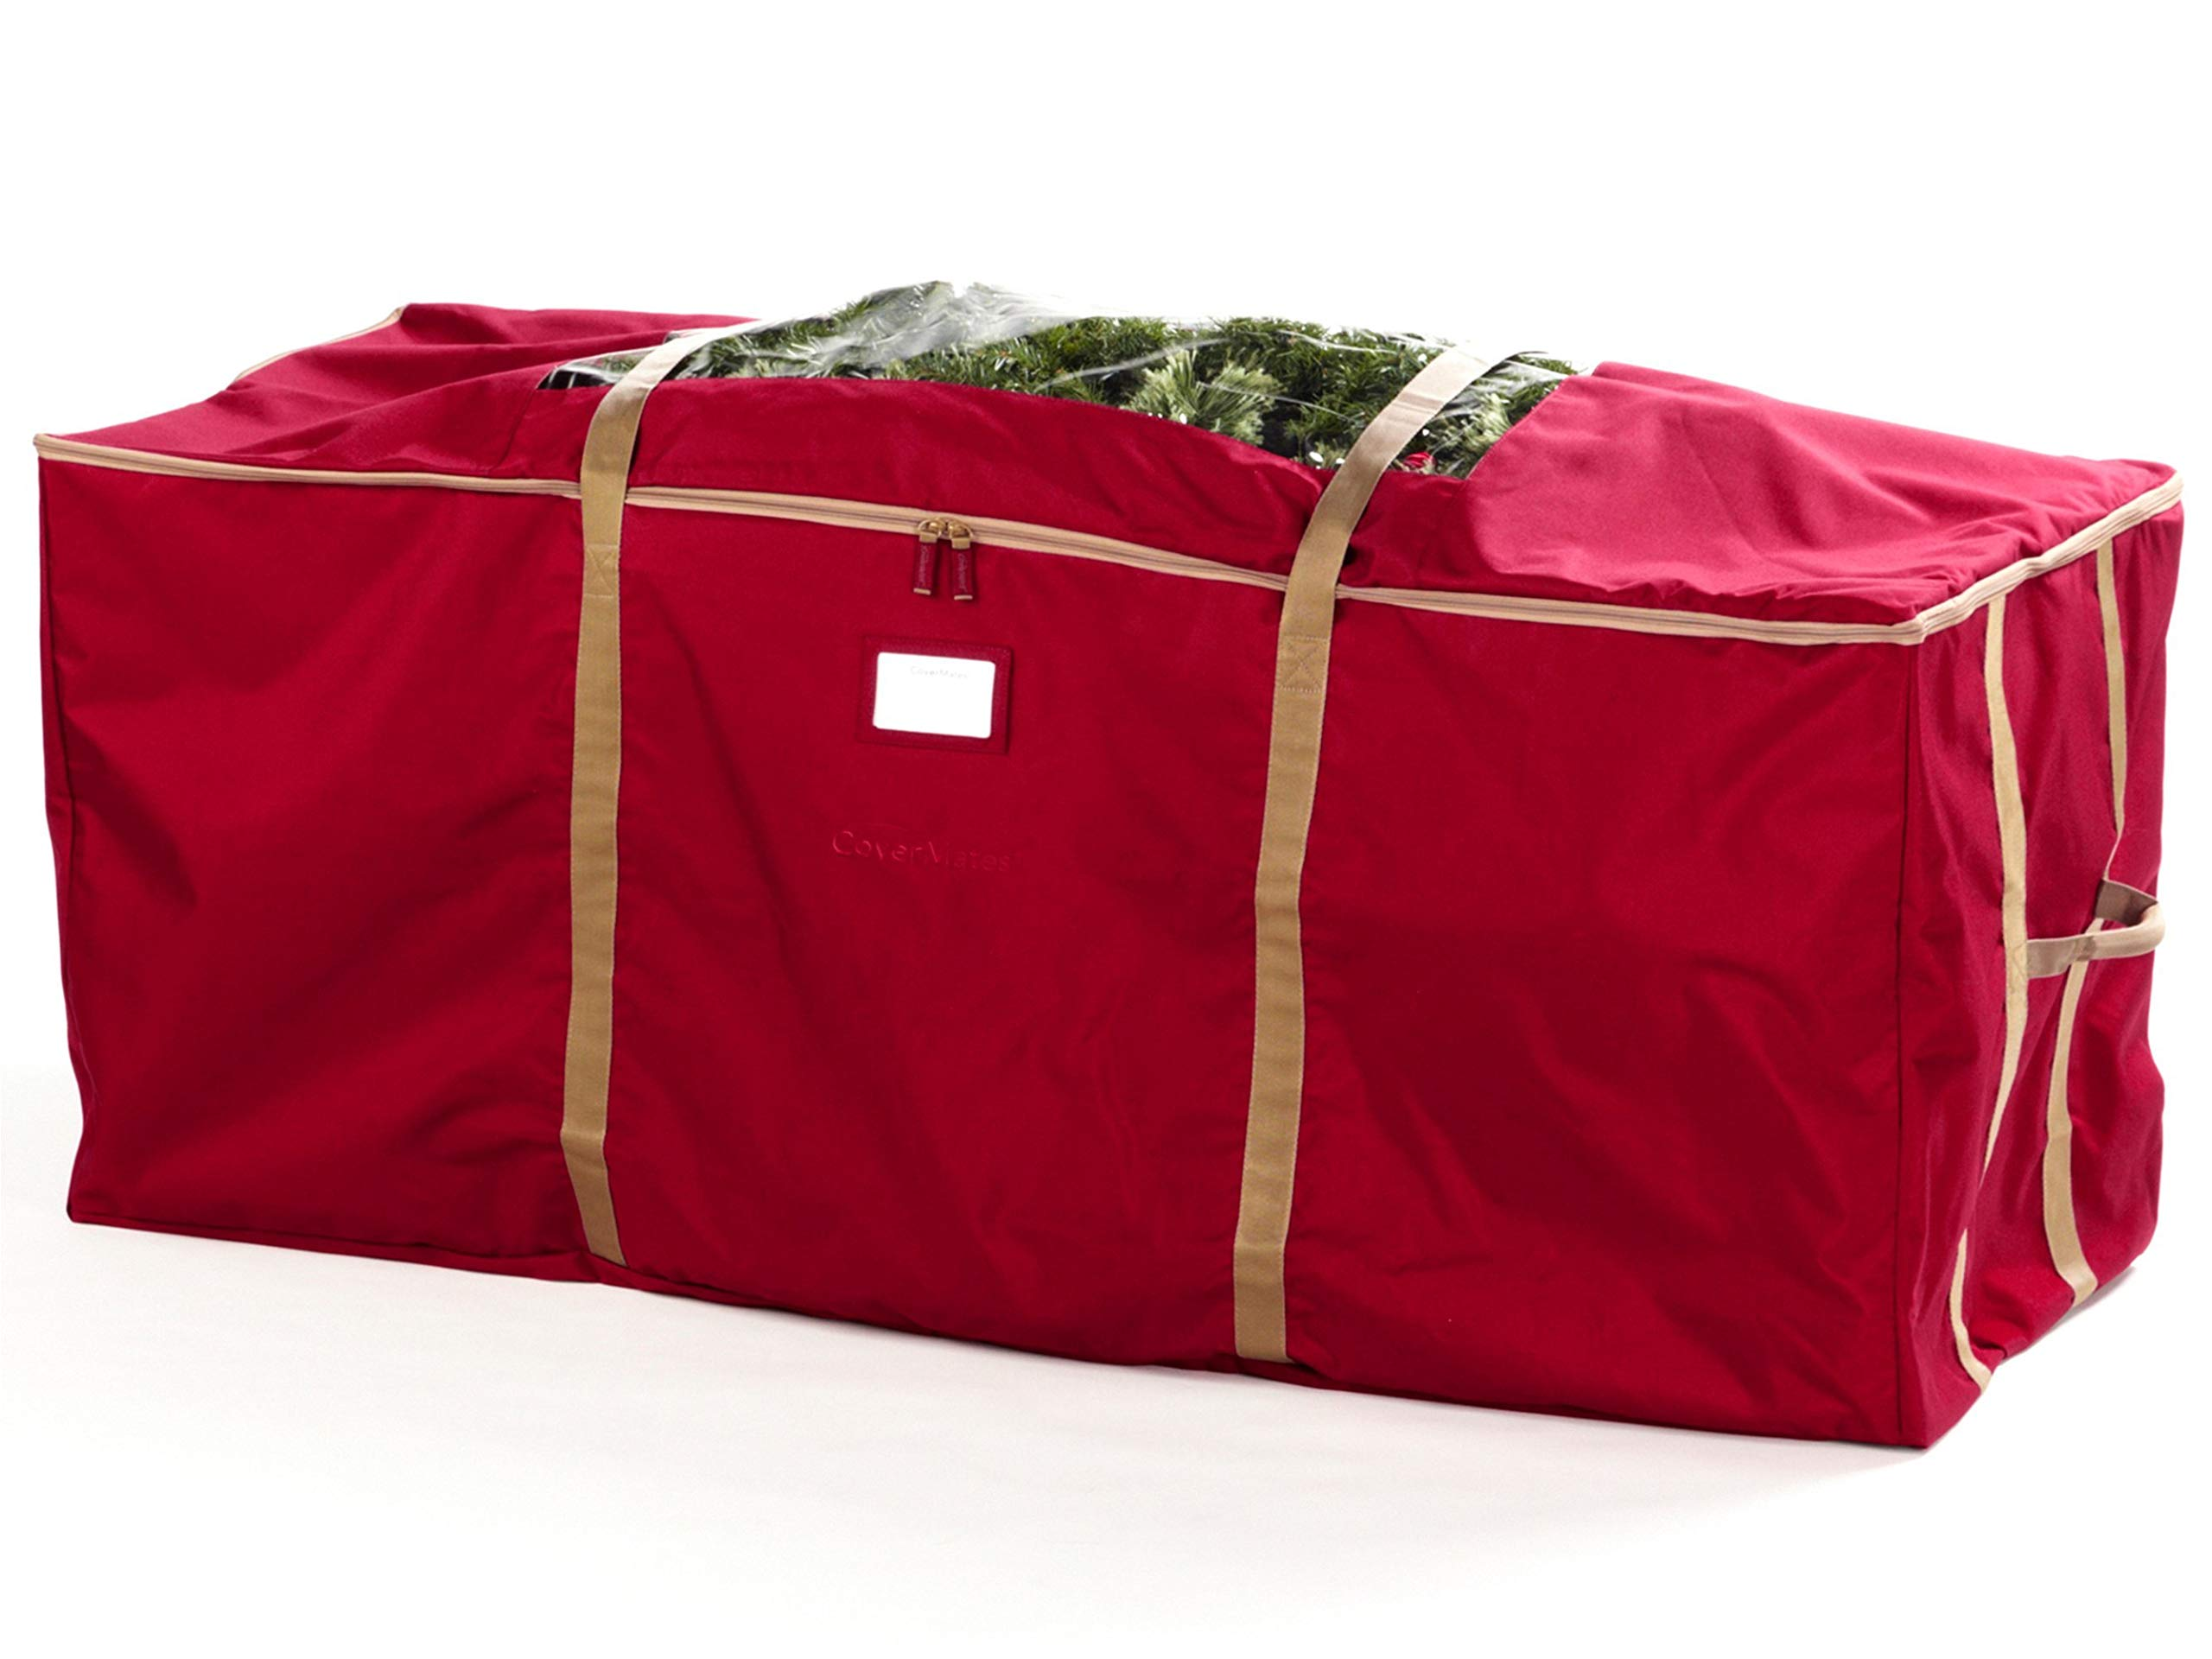 98f0a5641437 Covermates – Holiday Tree Storage Bag – Fits 9 to 11 Foot Tree – 3 Year  Warranty- Red